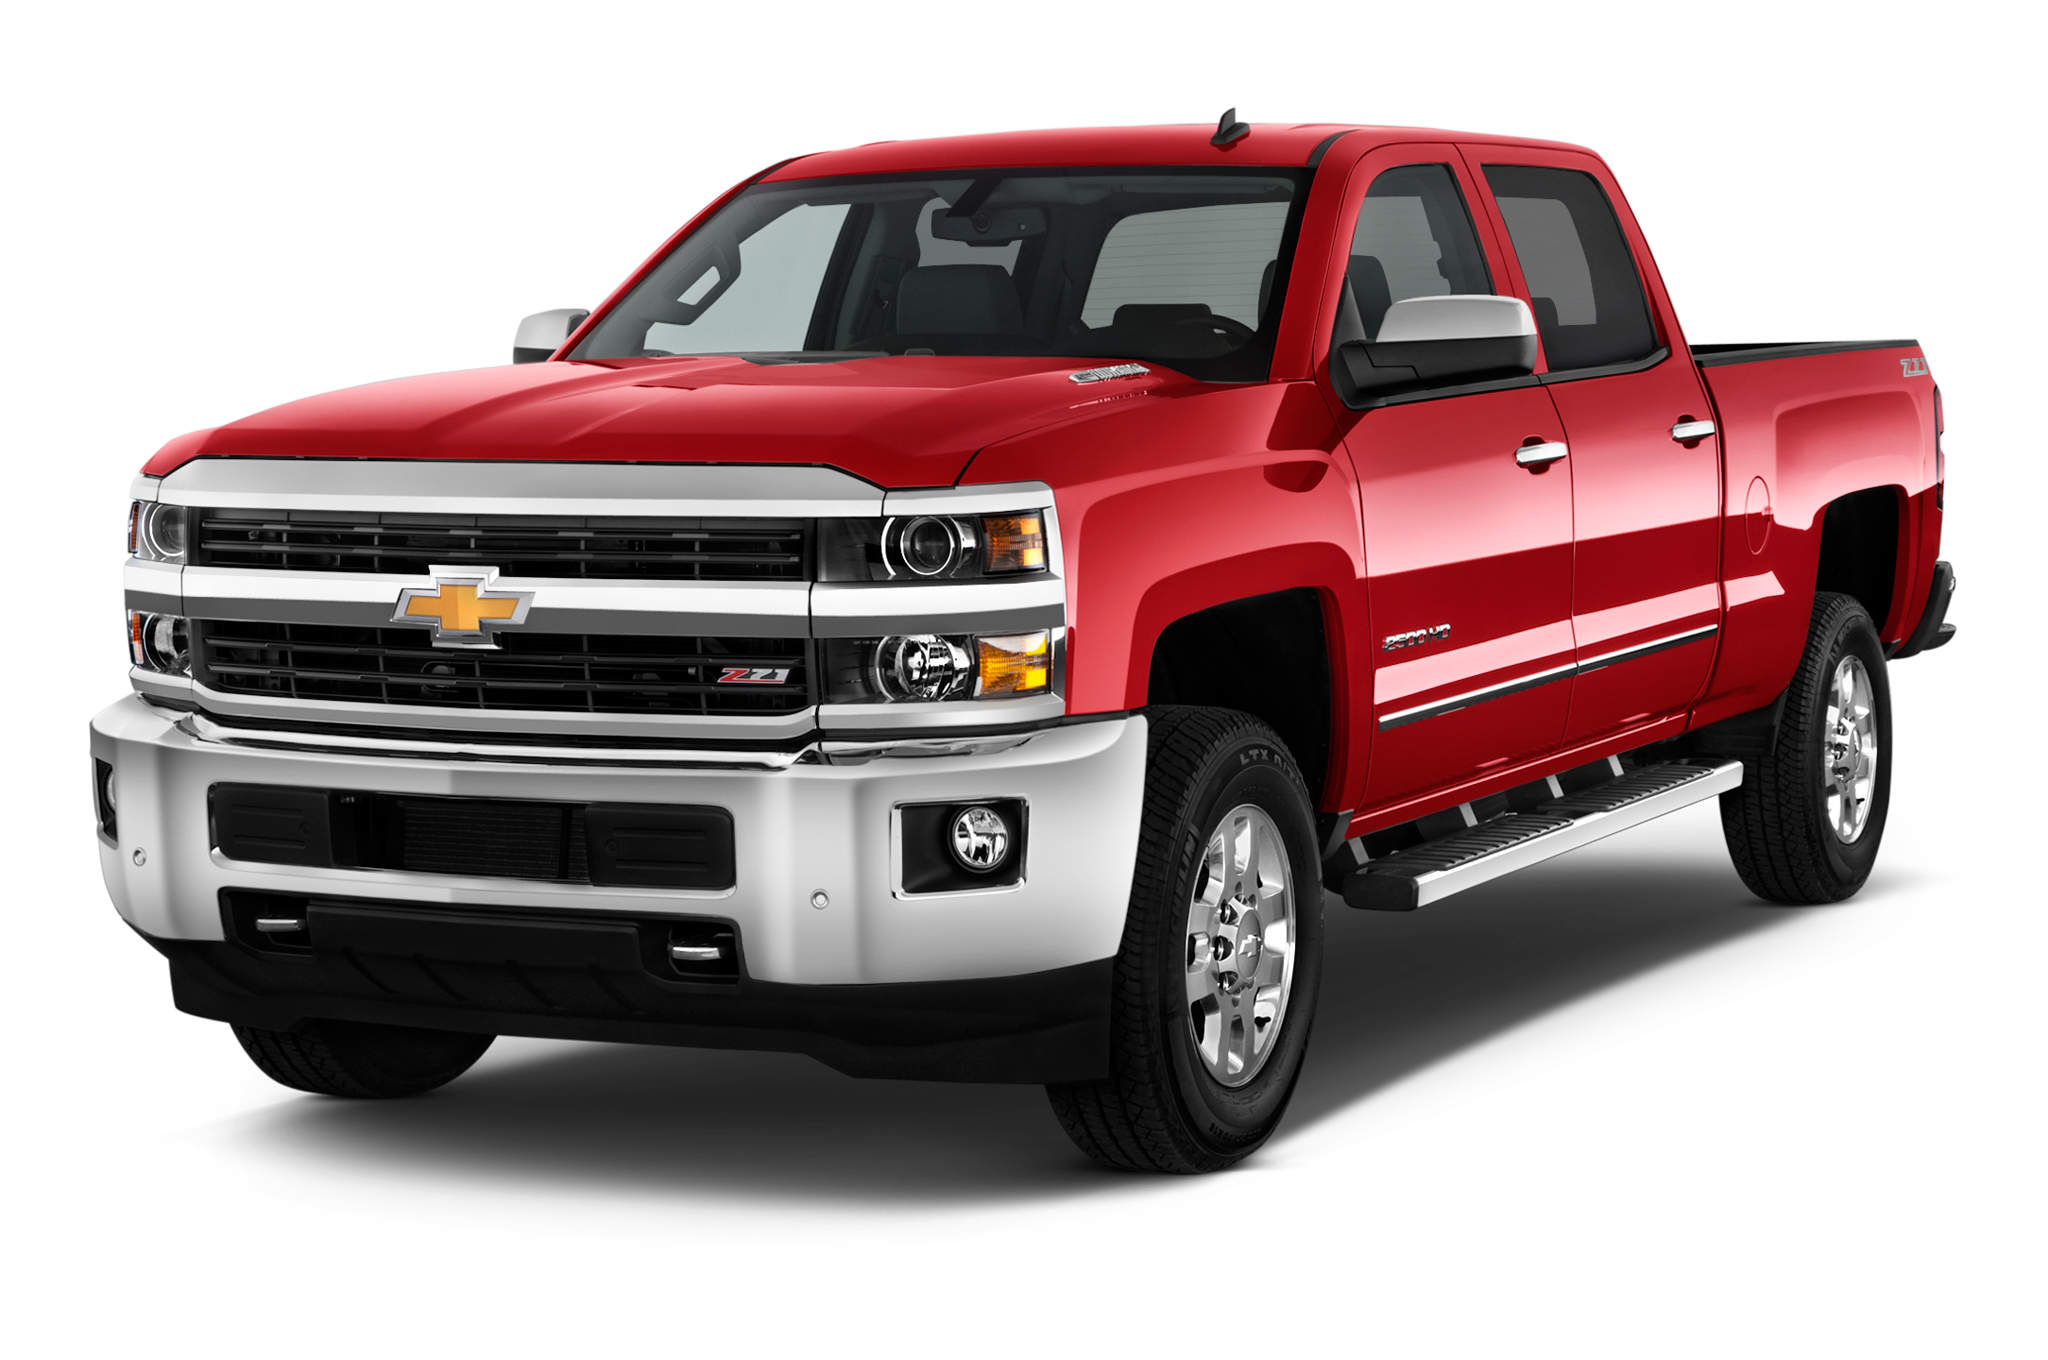 2016 chevrolet silverado 2500hd specs and features msn autos. Black Bedroom Furniture Sets. Home Design Ideas